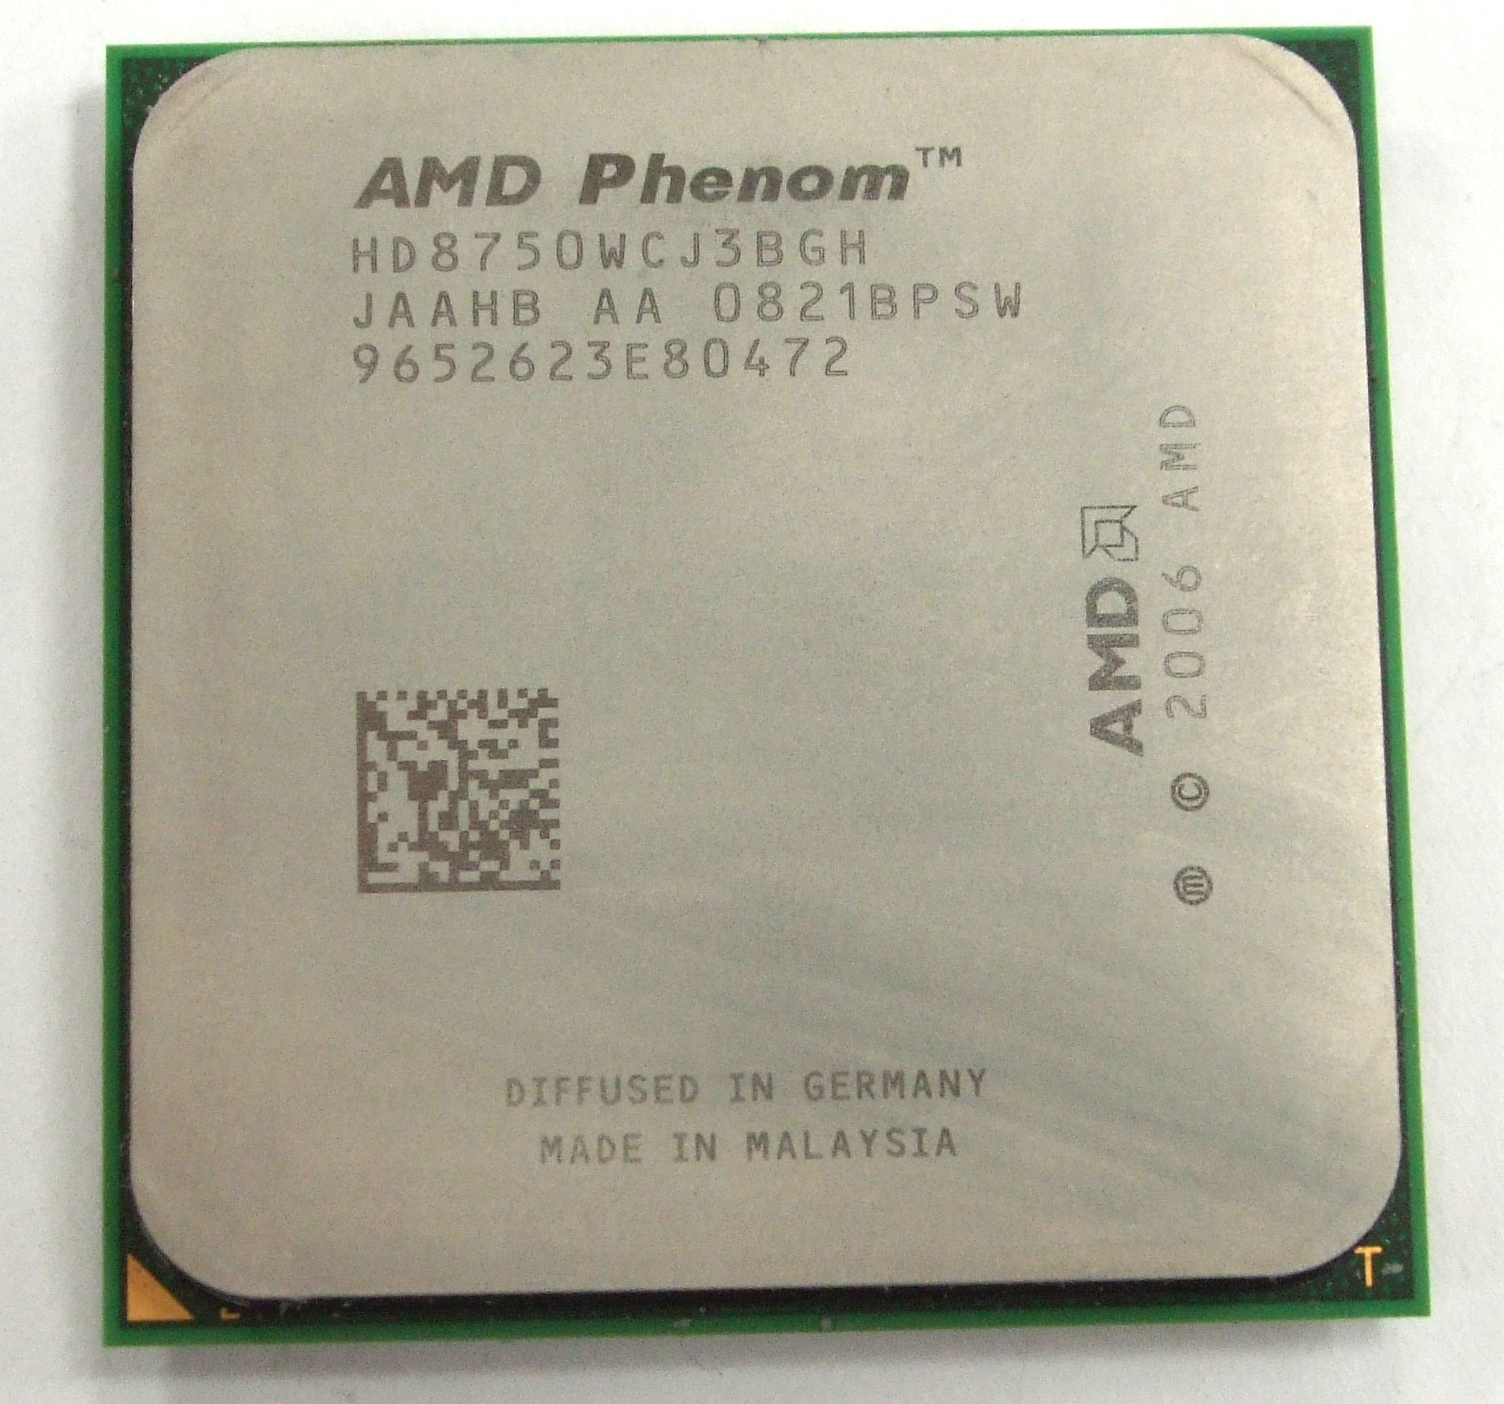 HD8750WCJ3BGH AMD Phenom X3 8750 Socket AM2+ Tri-Core Processor